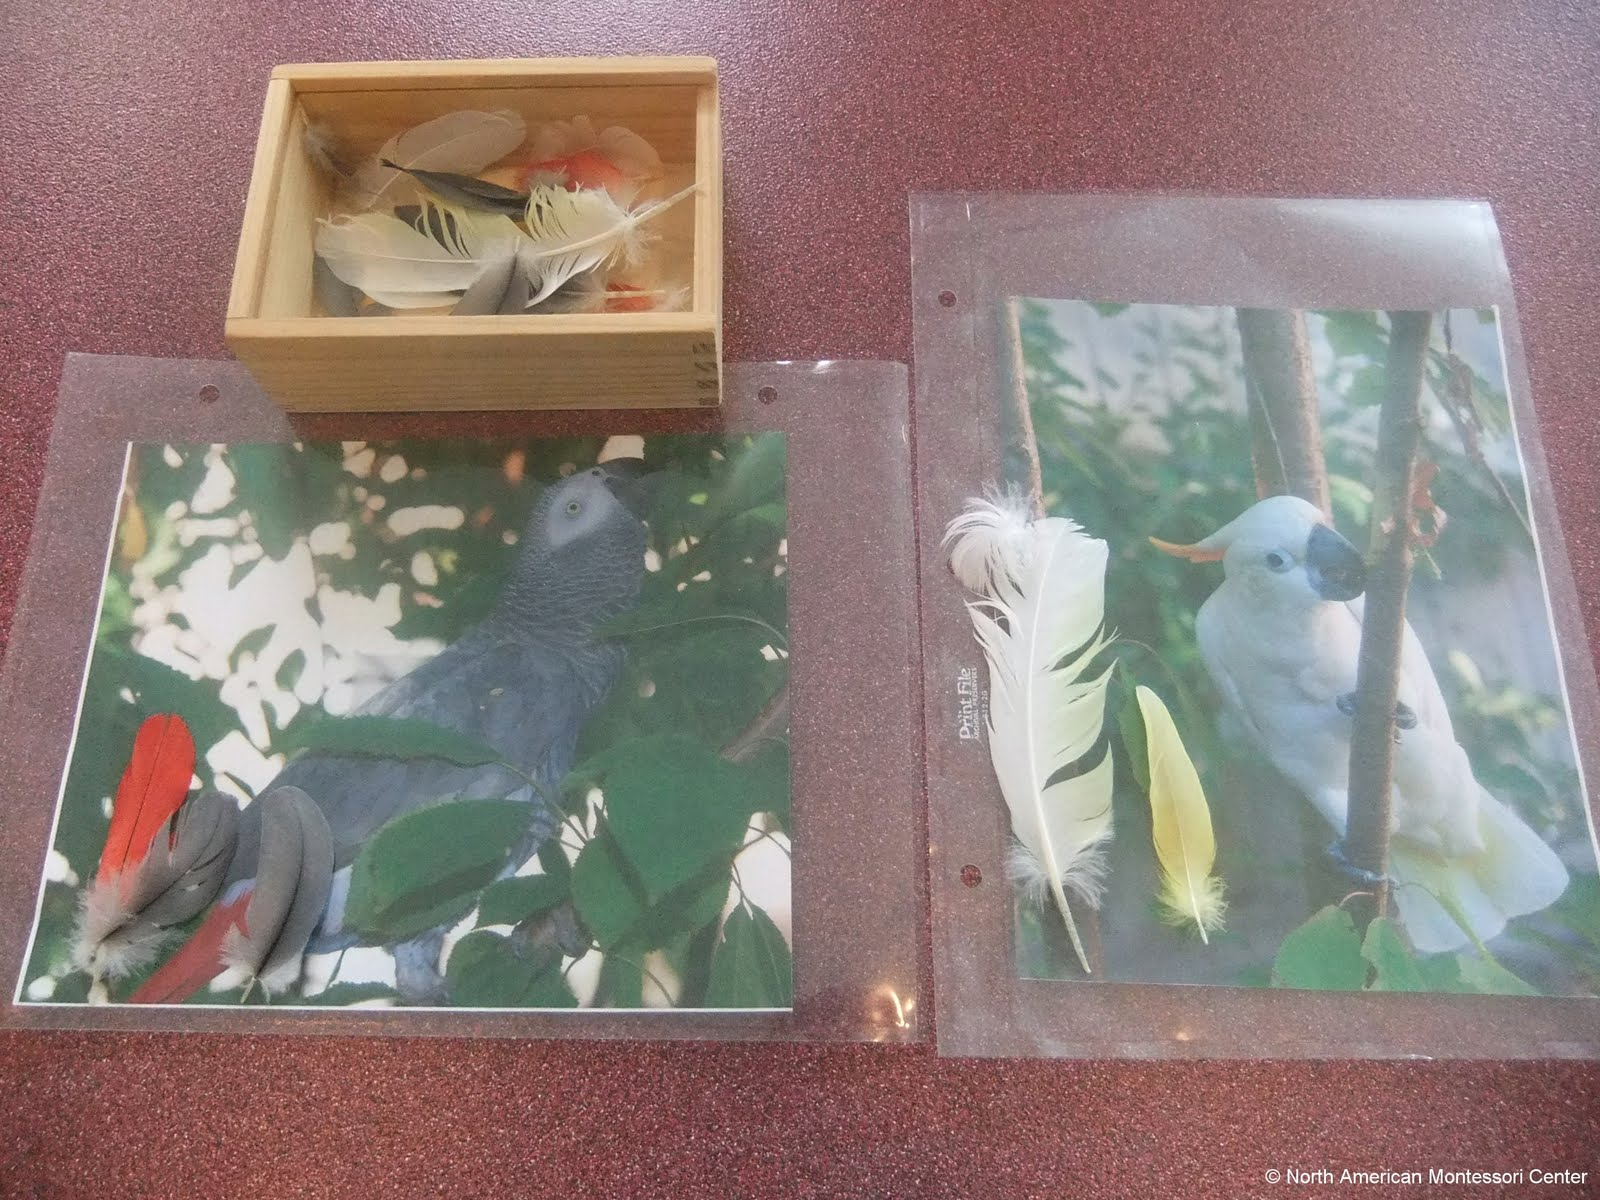 NAMC montessori preschool classroom studying birds feathers pictures